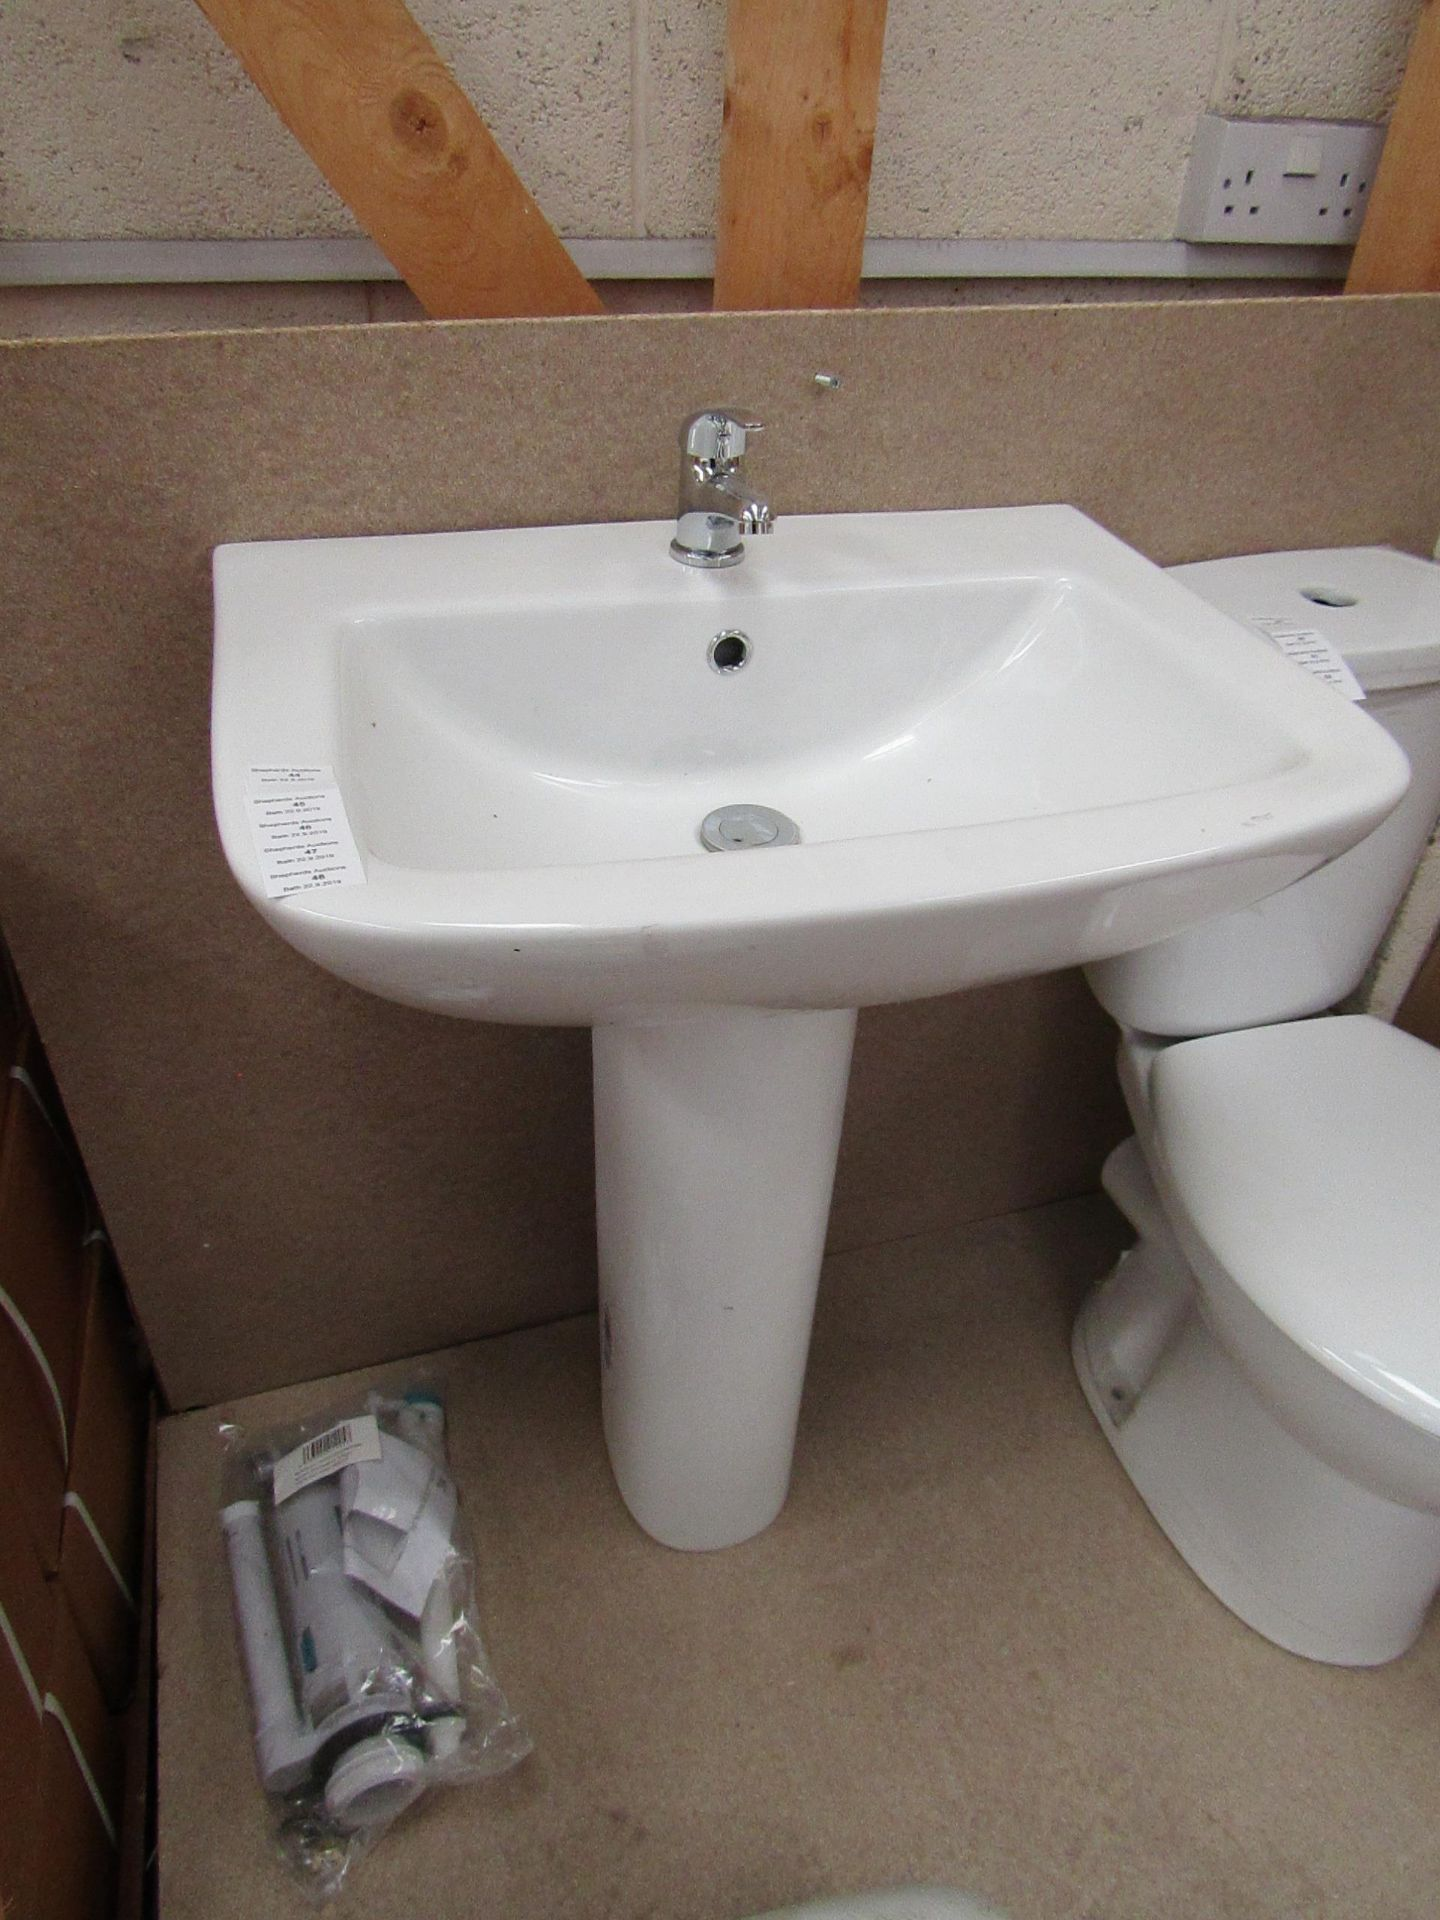 Lotto 48 - Unbranded Roca Cloakroom basin set that includes a 620mm 1 tap hole sink with full pedestal and a